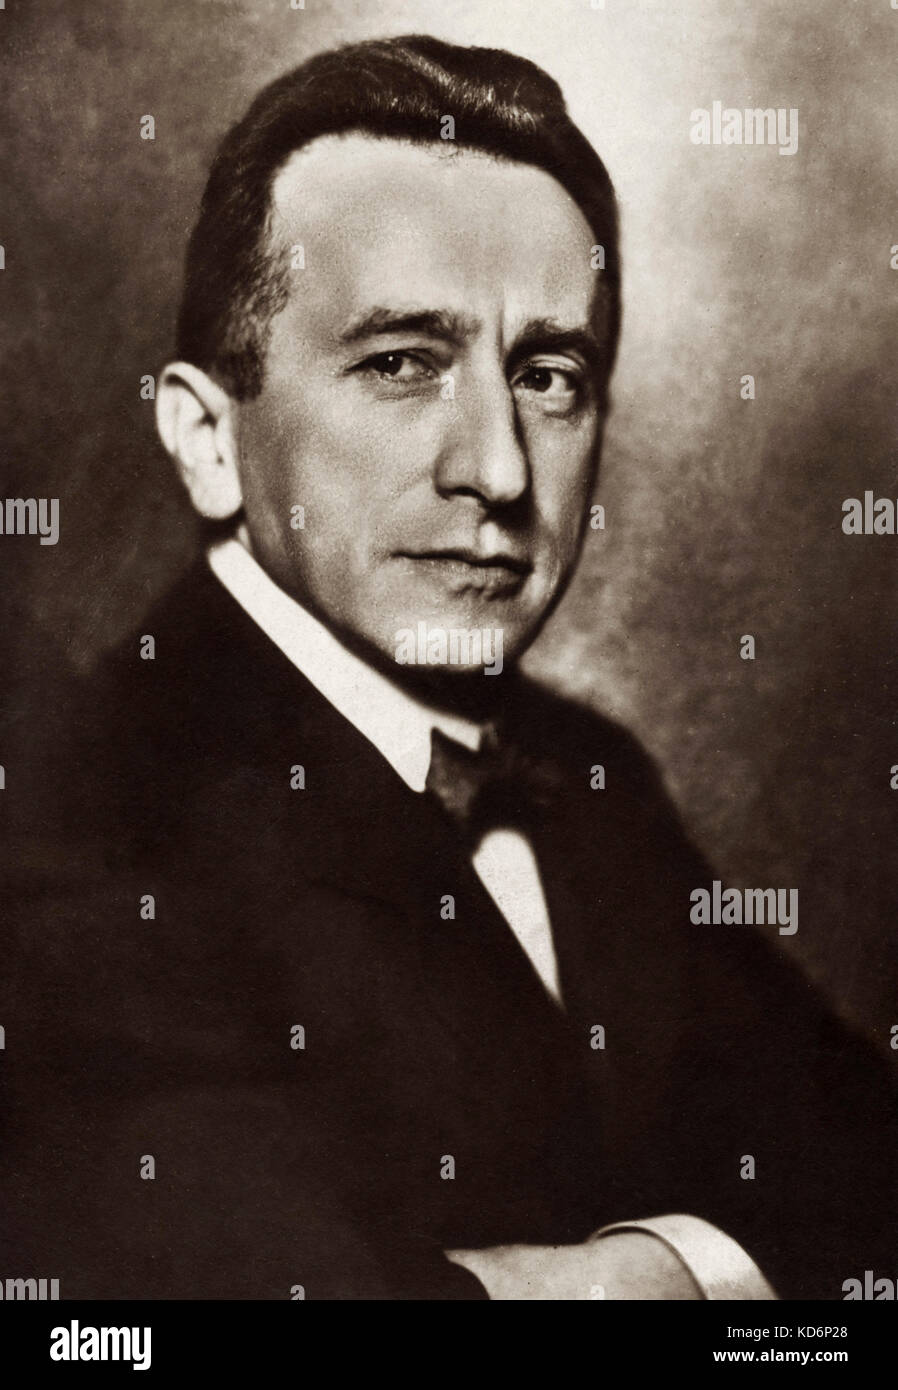 Leo Blech - portrait photograph postcard.  German opera conductor and composer. 21 April 1871 - 25 August 1958 - Stock Image